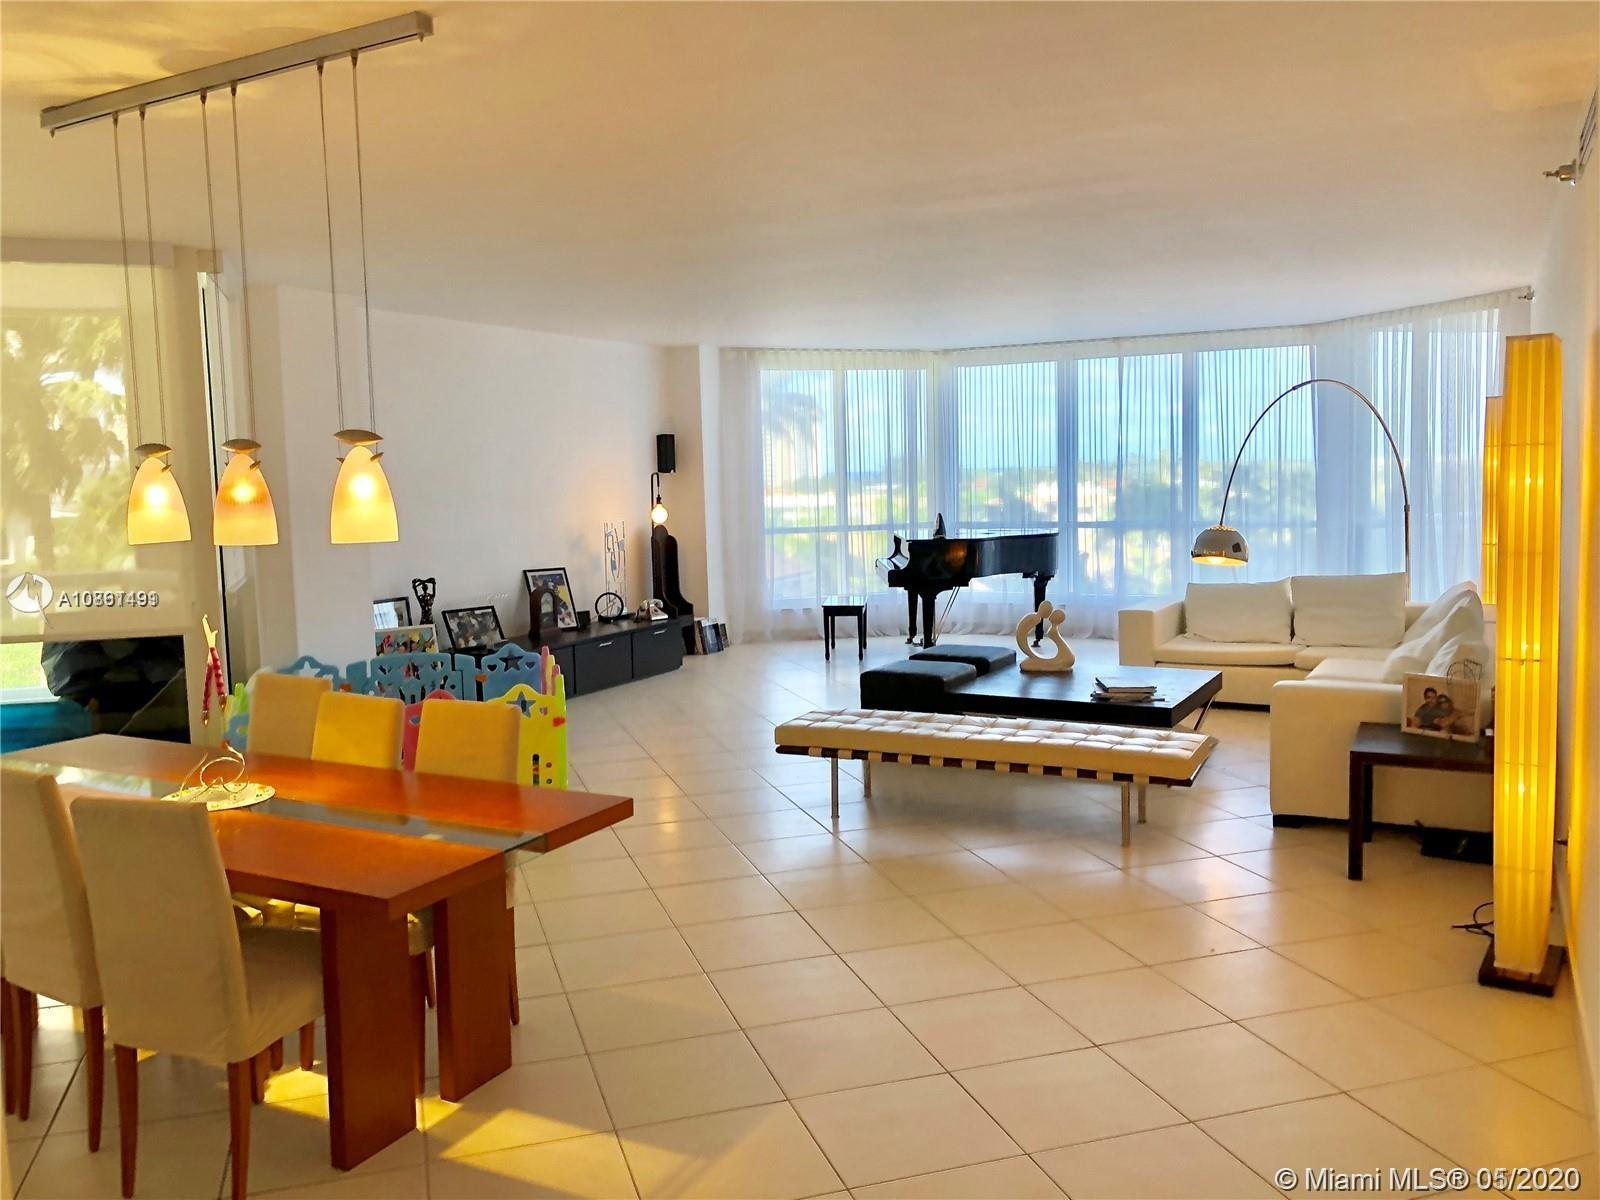 FIND YOUR PLACE IN ATLANTIC TWO AT THE POINT UNIT 606. THIS LUXURIOUS 3 BDRM / 3 BTHRM CONDO IN THE